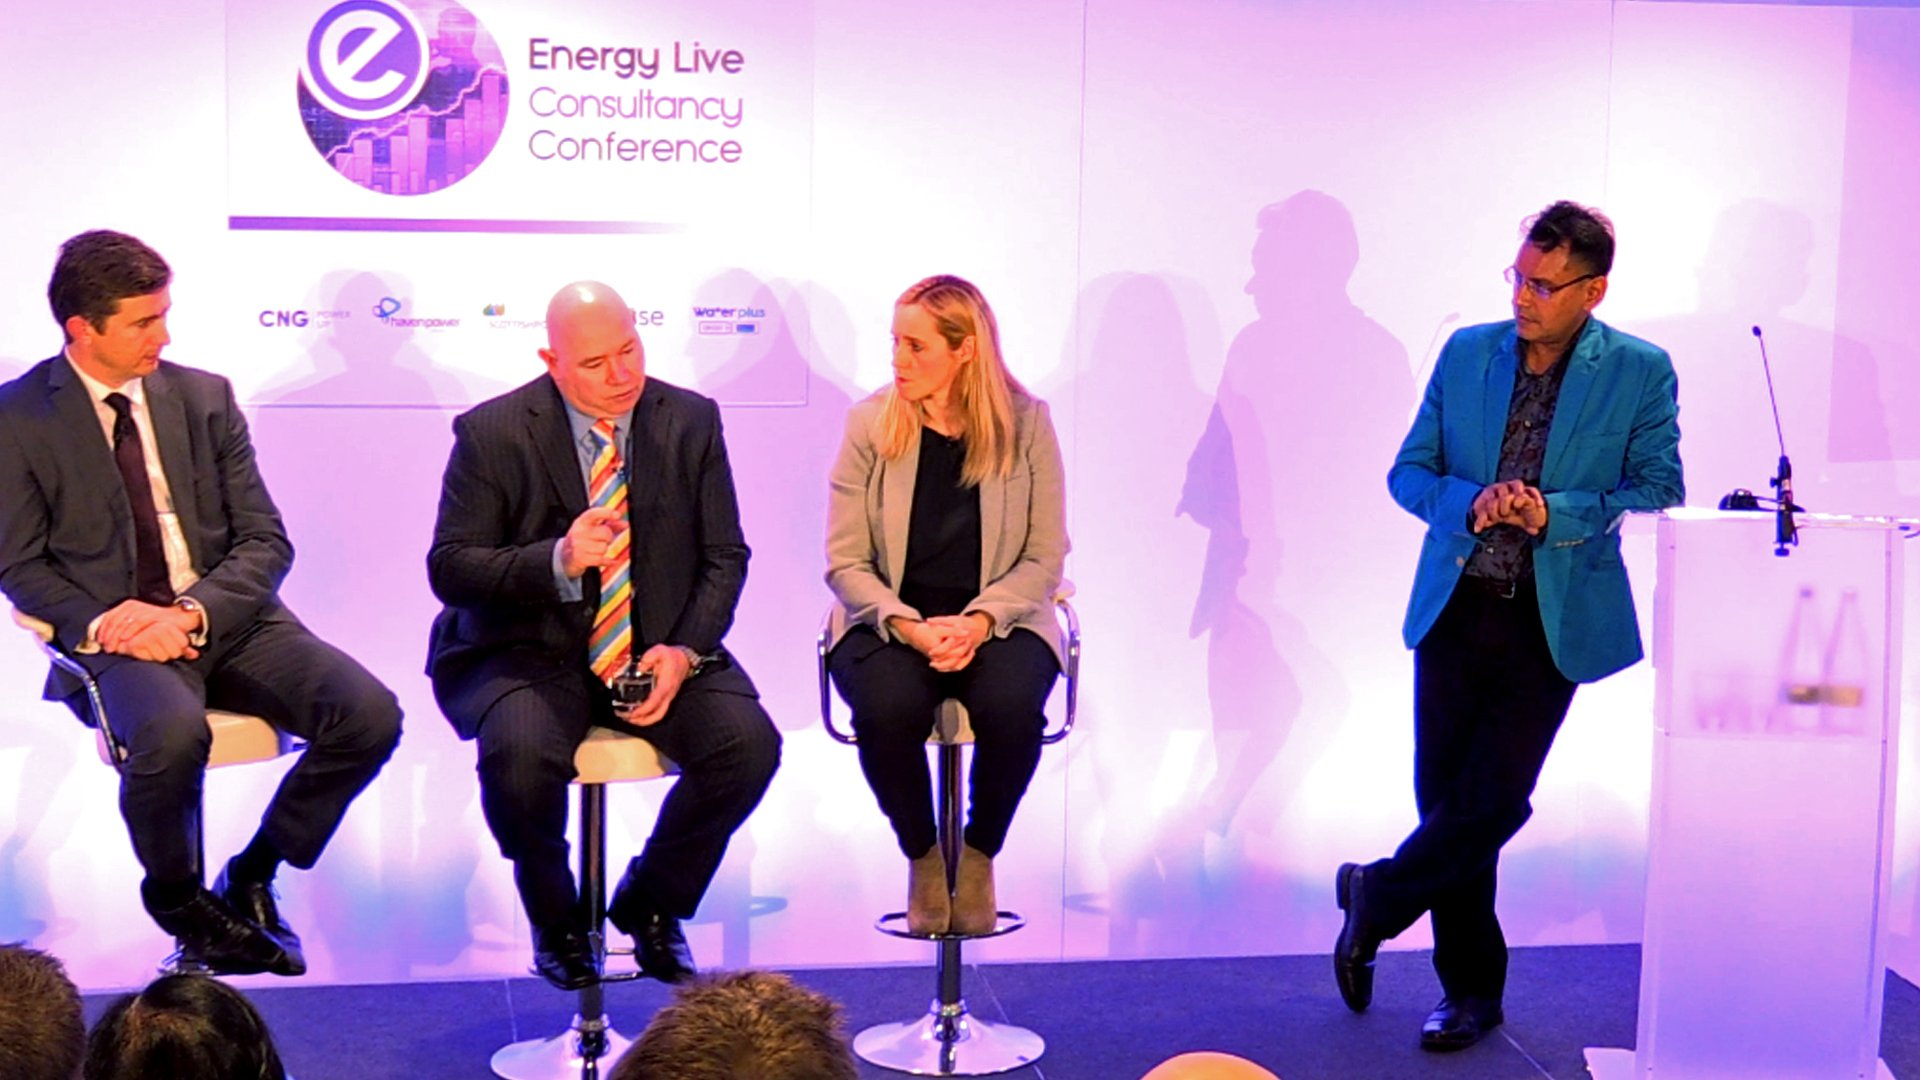 Image: ELN 'We want collaboration, not competition' - Energy Live News - Energy Made Easy 'We want collaboration, not competition' - Energy Live News - Energy Made Easy story pic